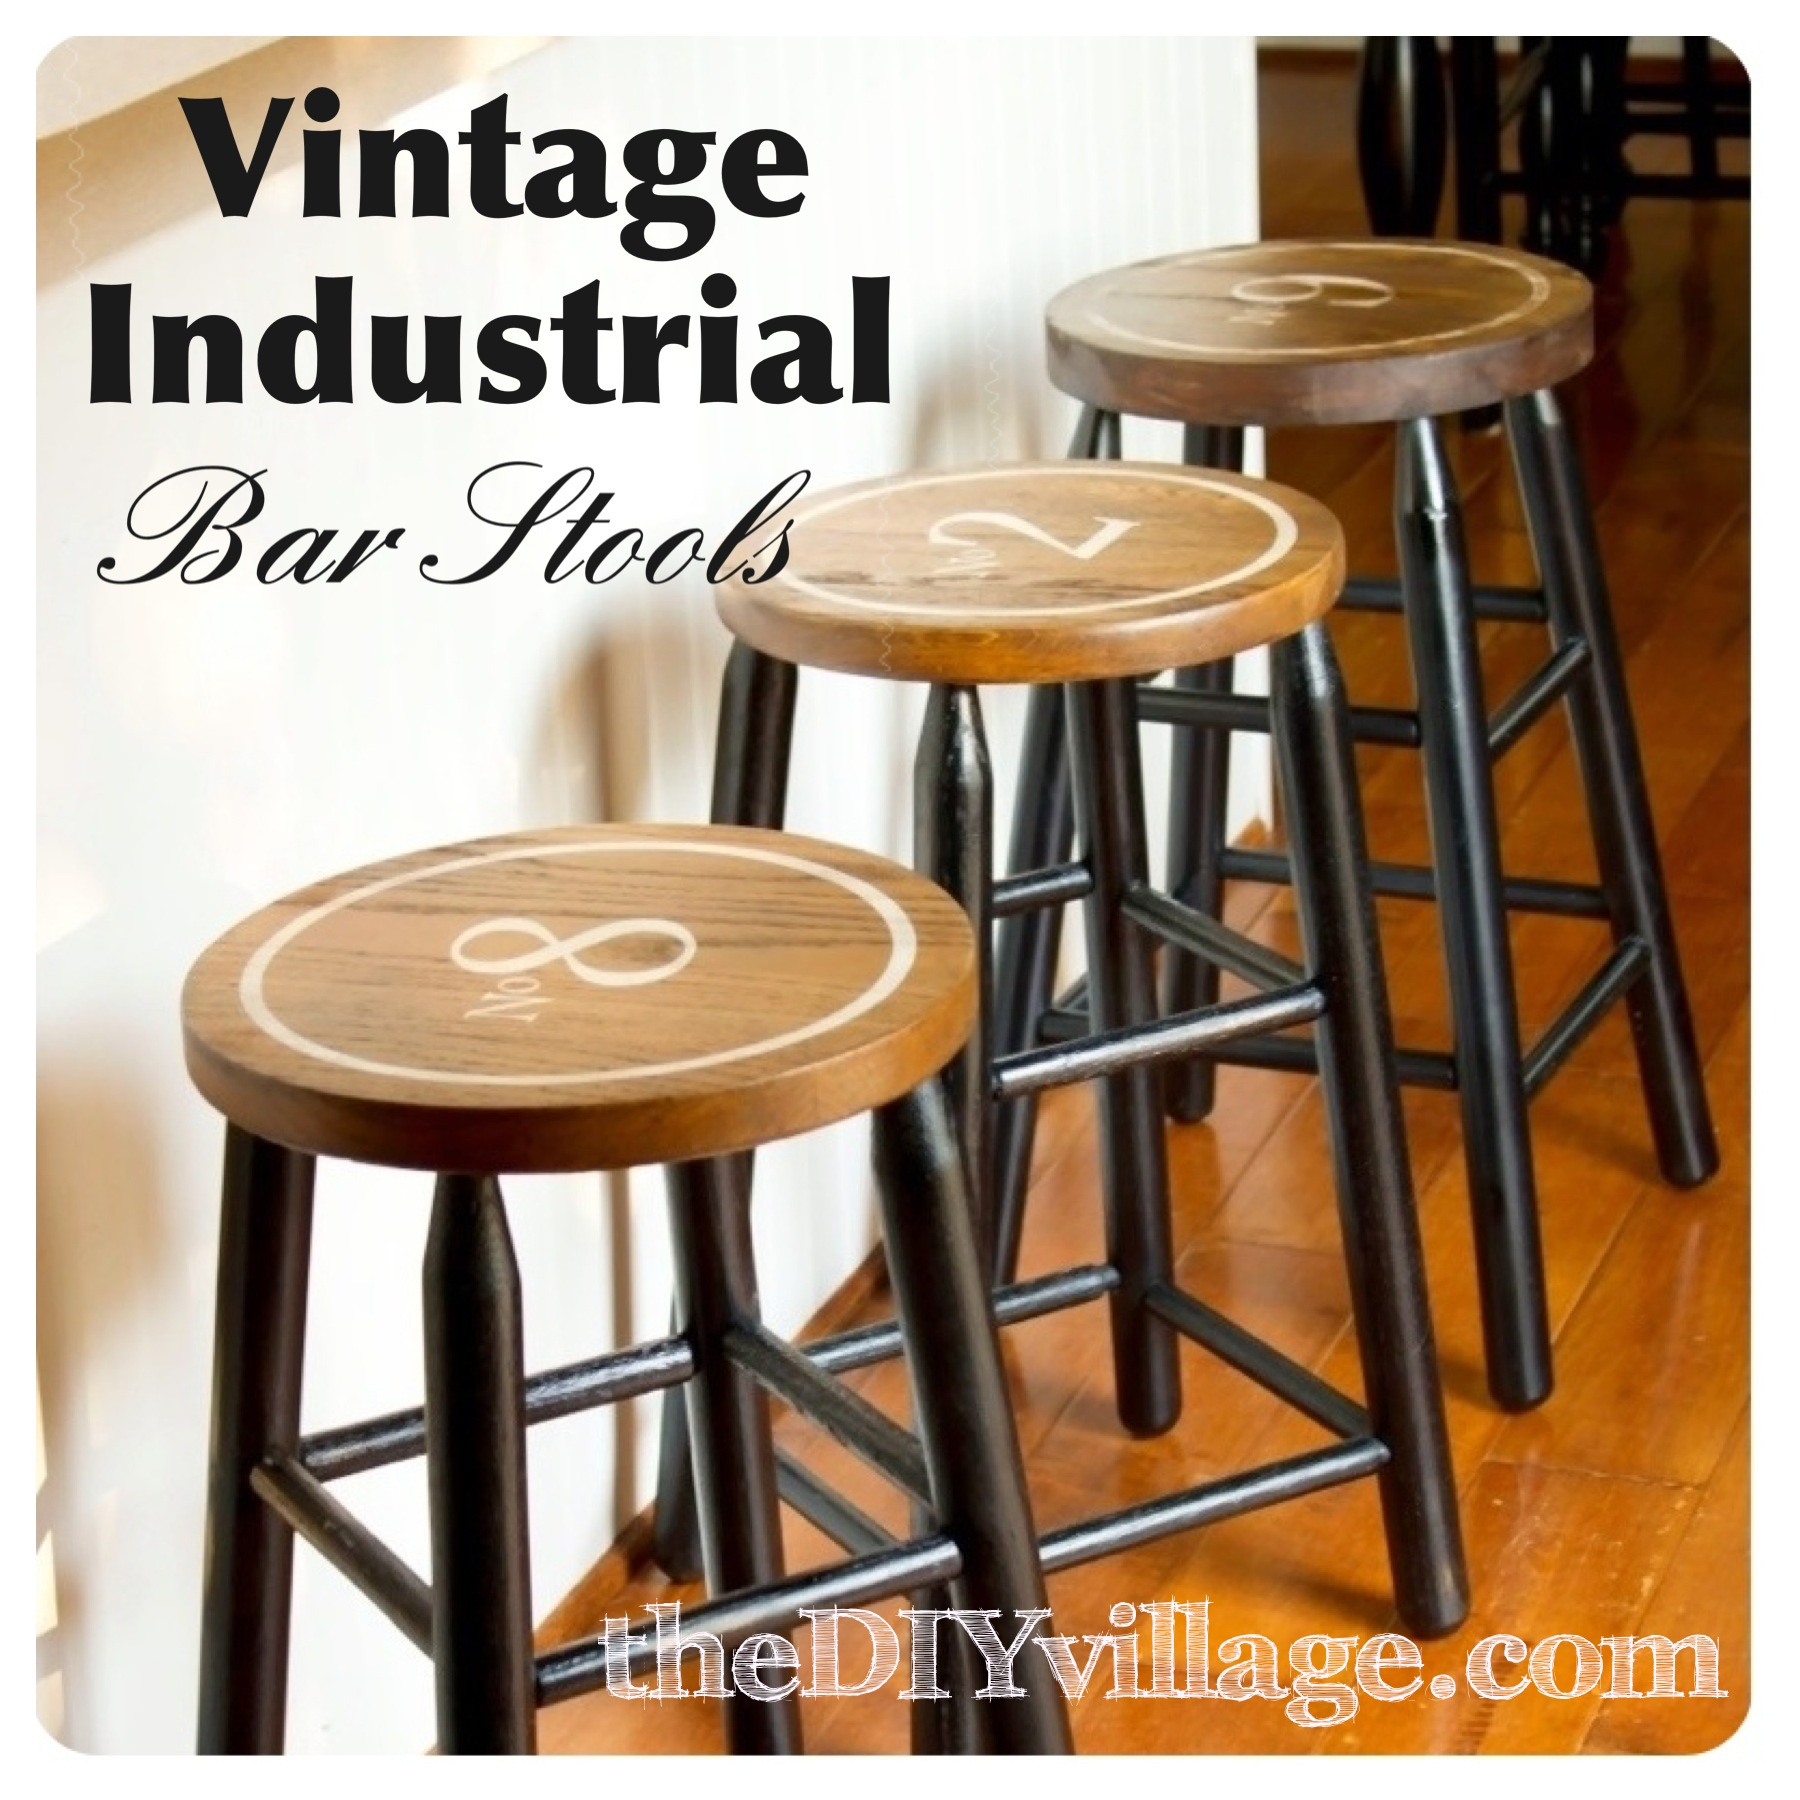 These vintage industrial bar stools are trendy and classic.